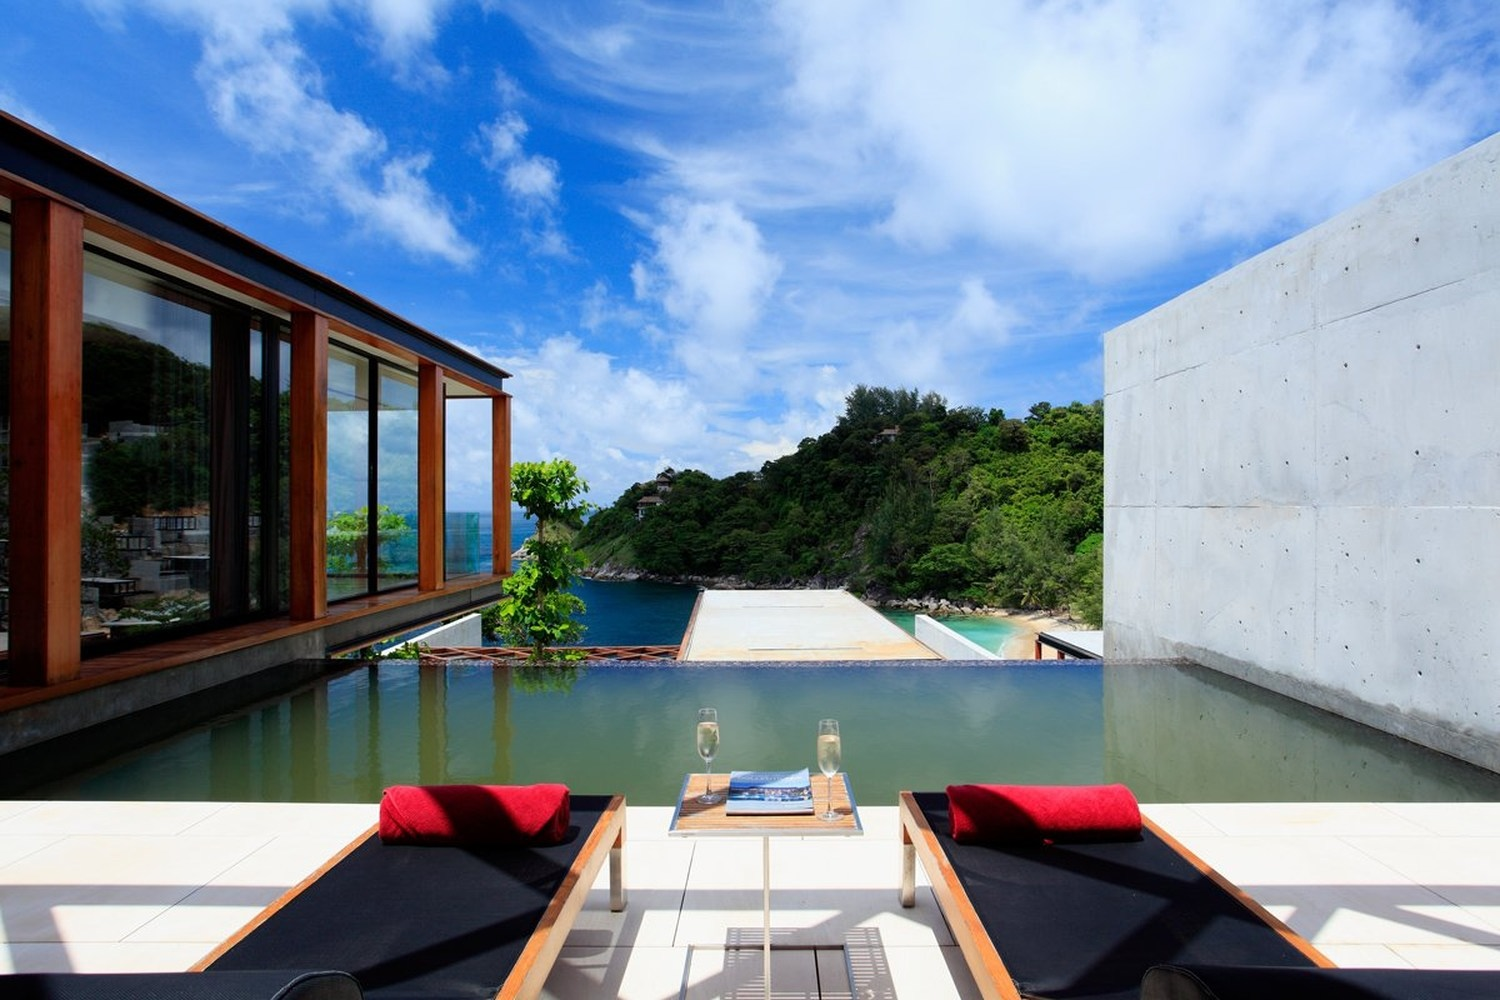 The naka phuket by duangrit bunnag karmatrendz for Design hotel phuket